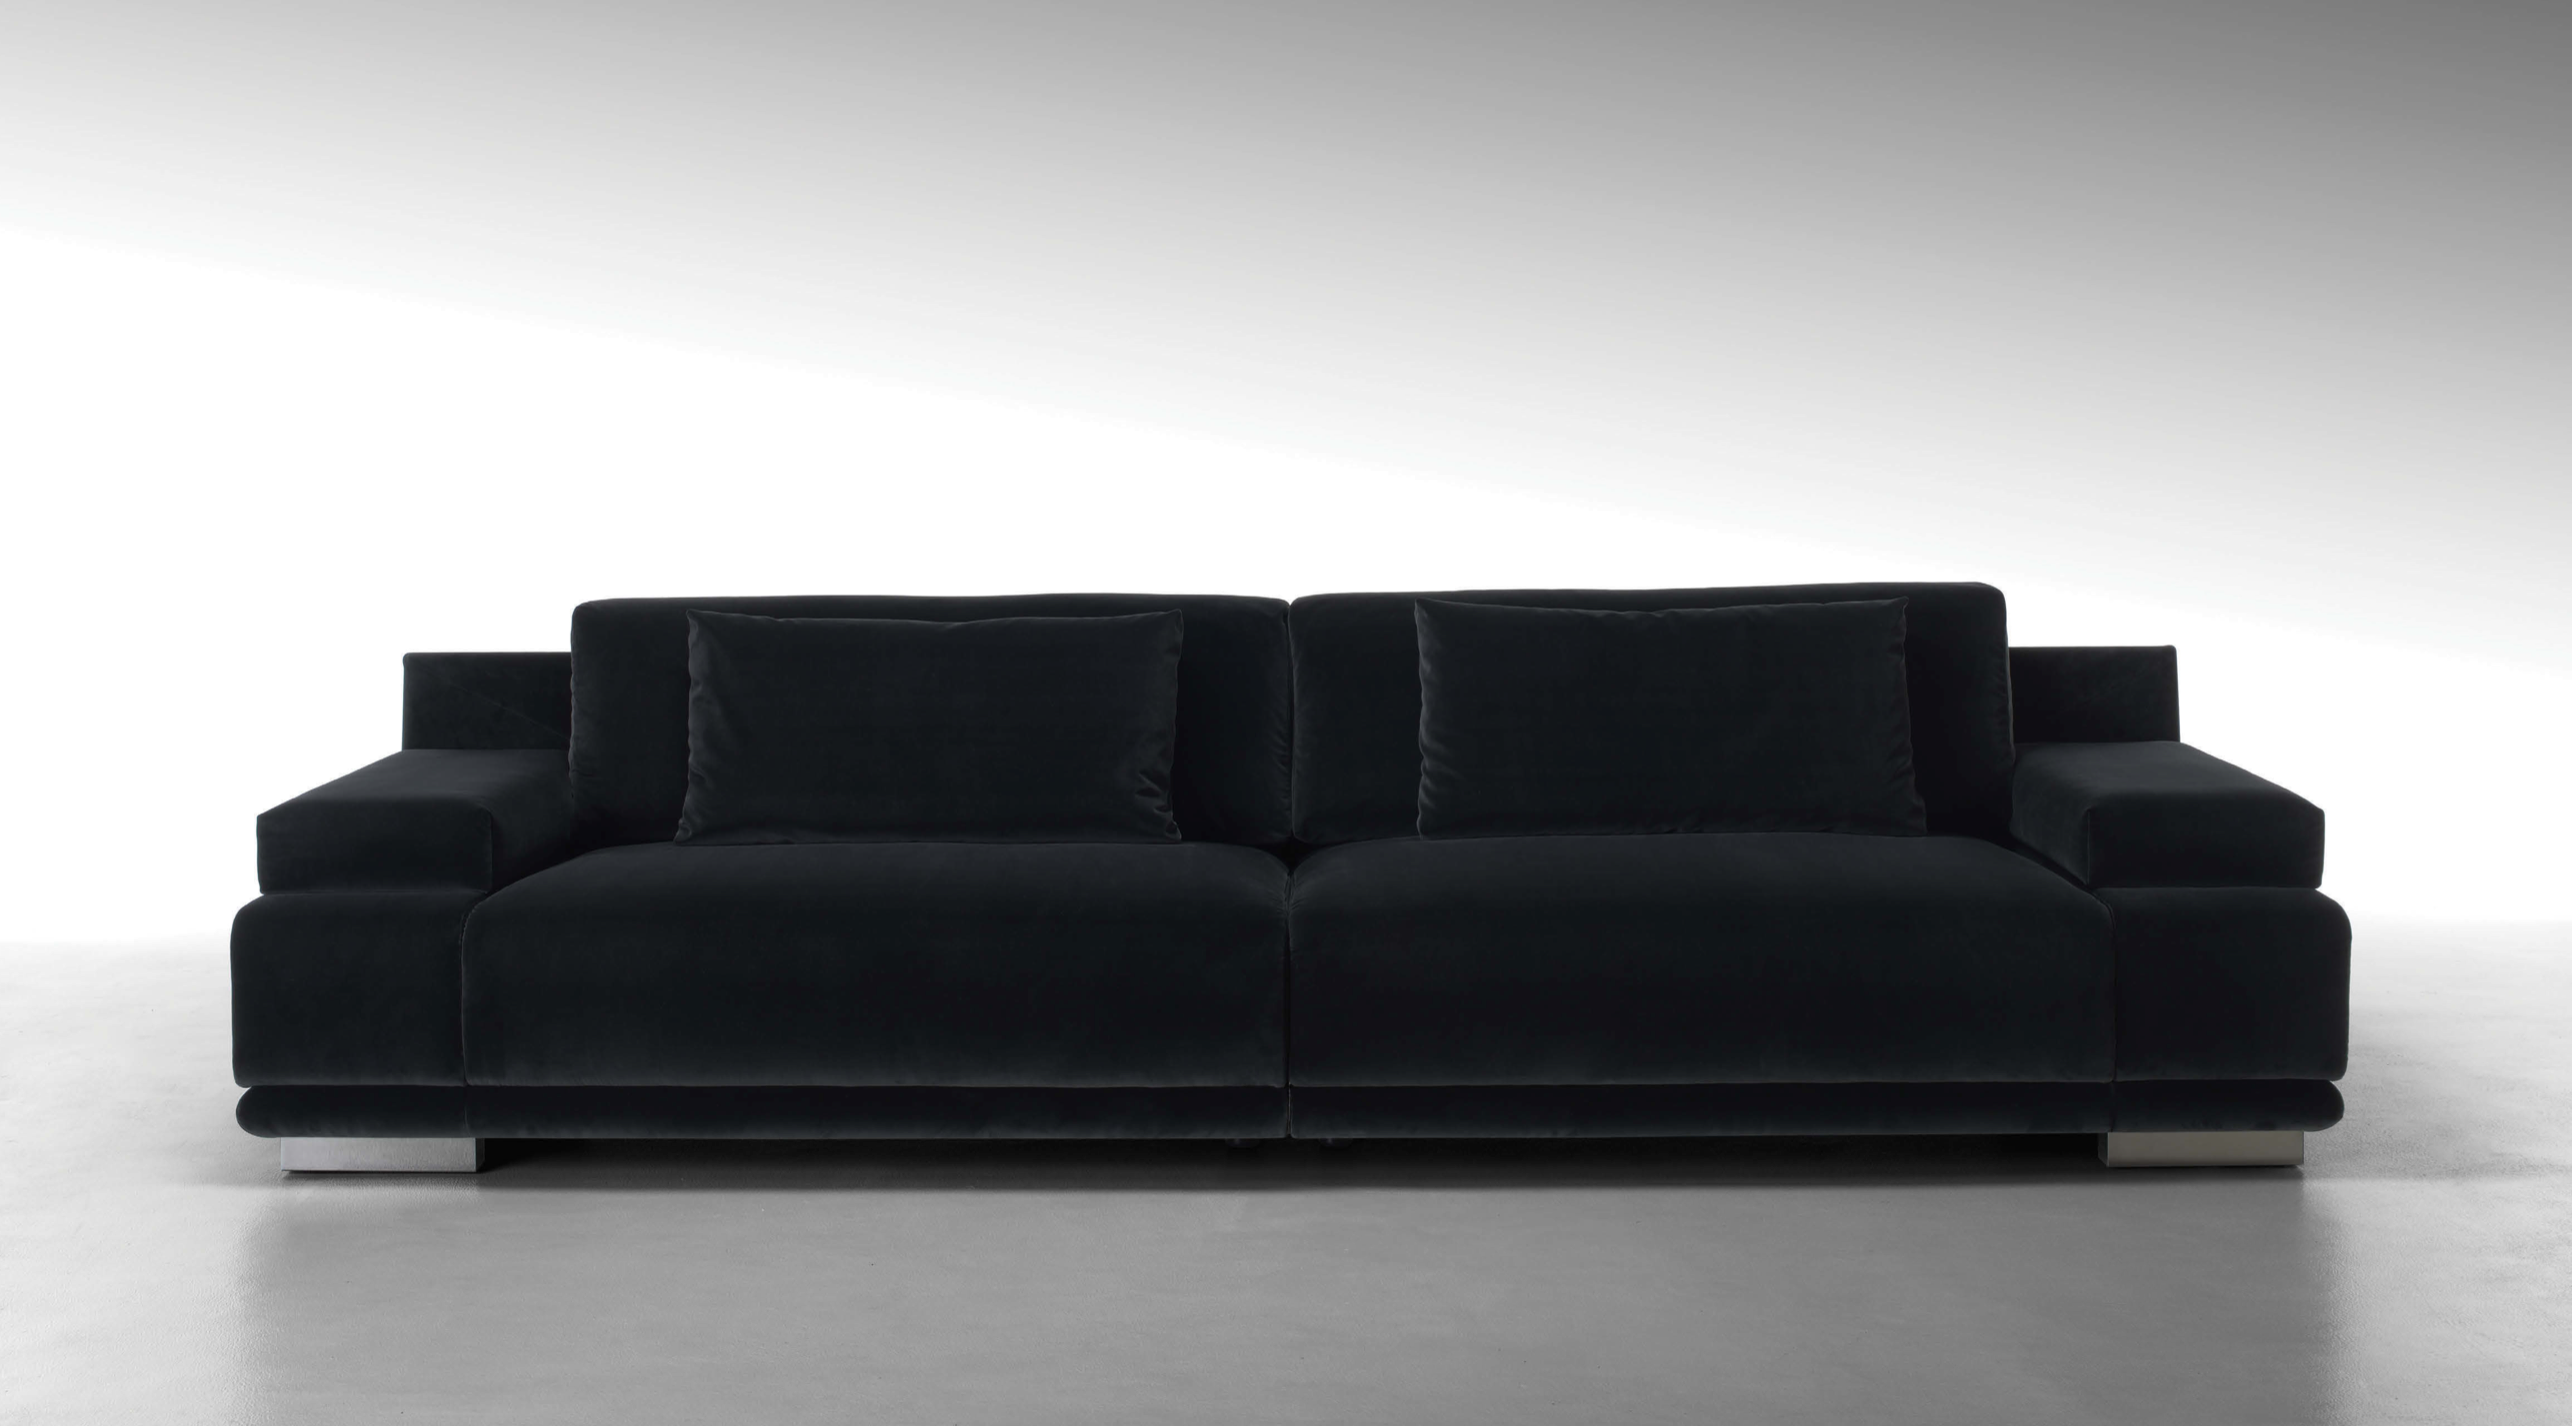 Introducing The Artu Sofa And Armchair Collection Style By Jpc